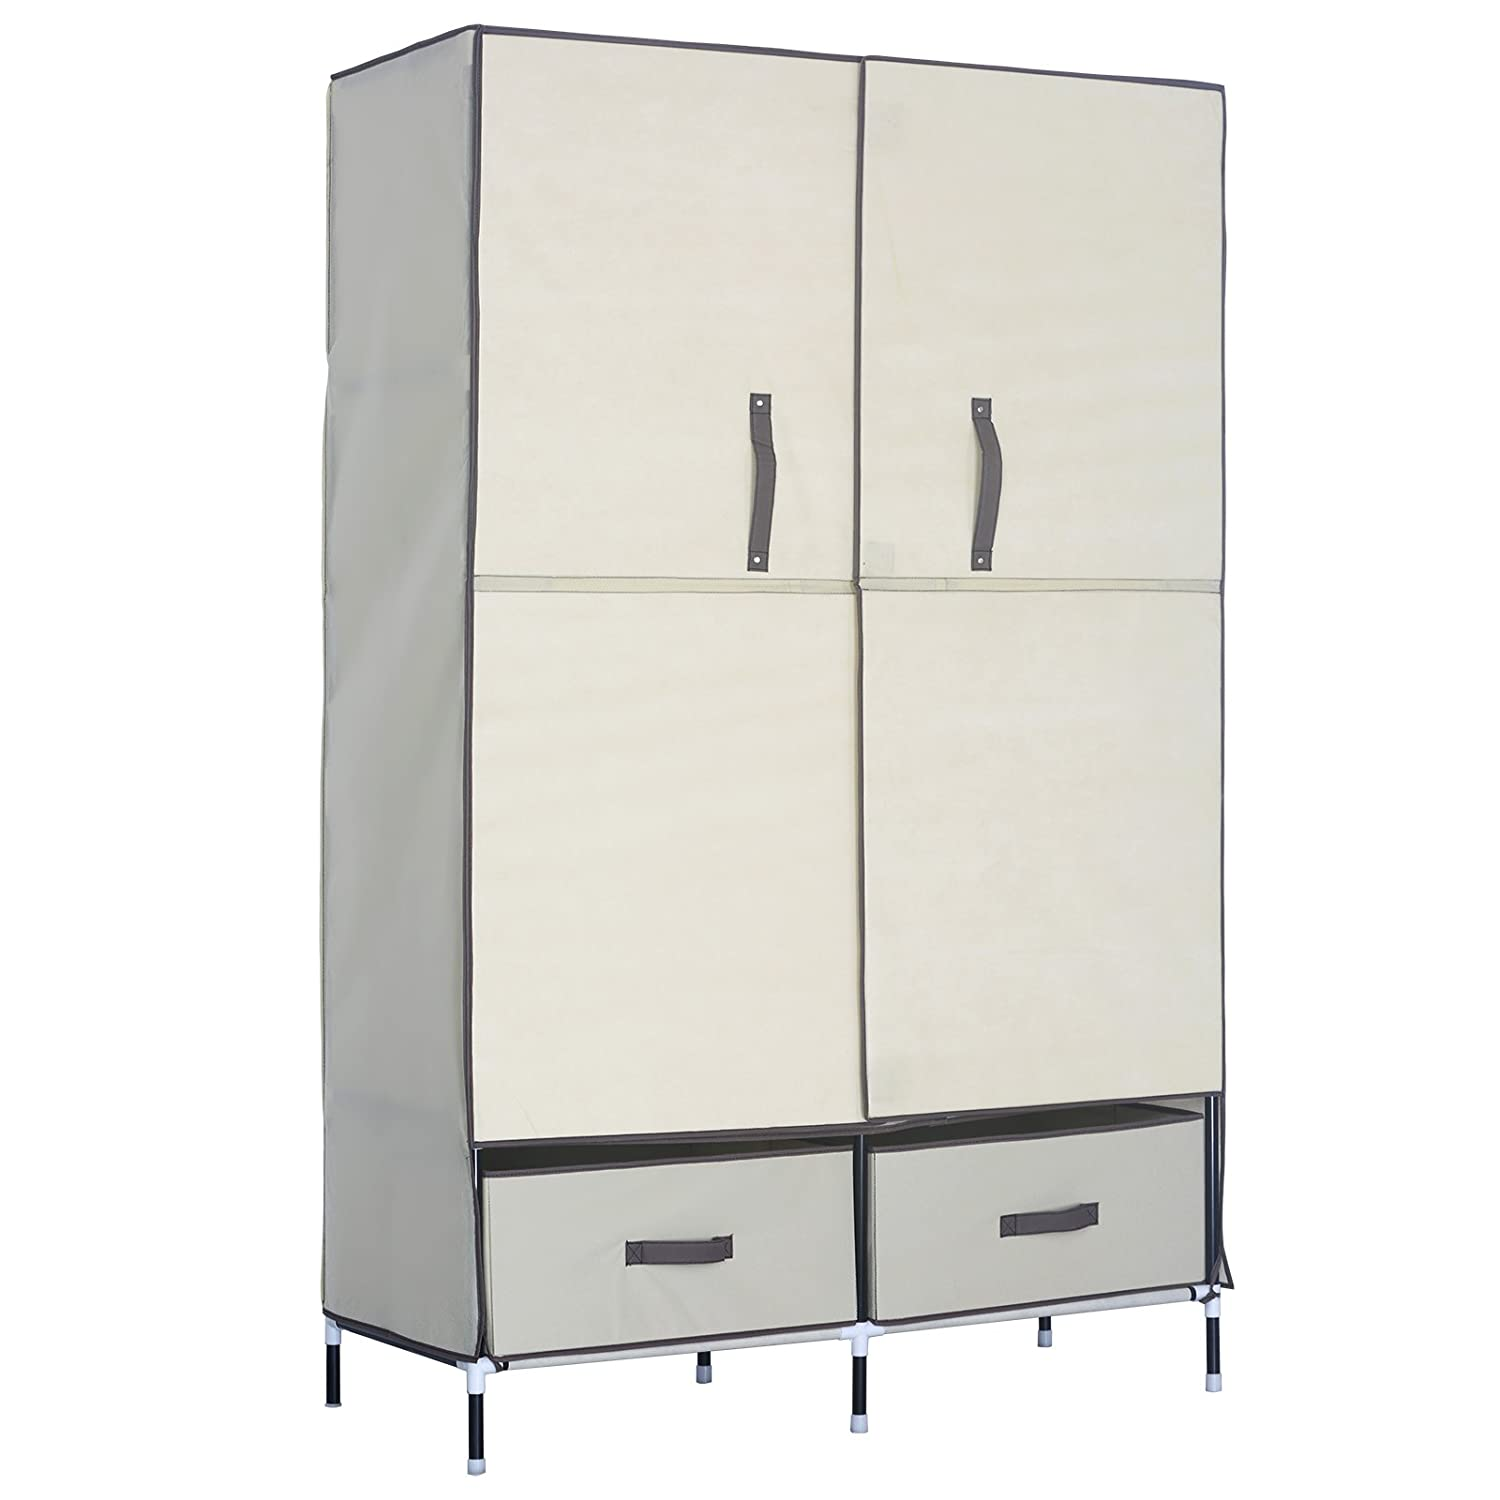 775b3b67d619 Amazon.com  WOLTU Portable Clothes Closet Wardrobe Storage with 2 Drawer  Cloth Organizer with Magnet Doors Steel Shoe Rack 6 Shelves Beige  Home    Kitchen